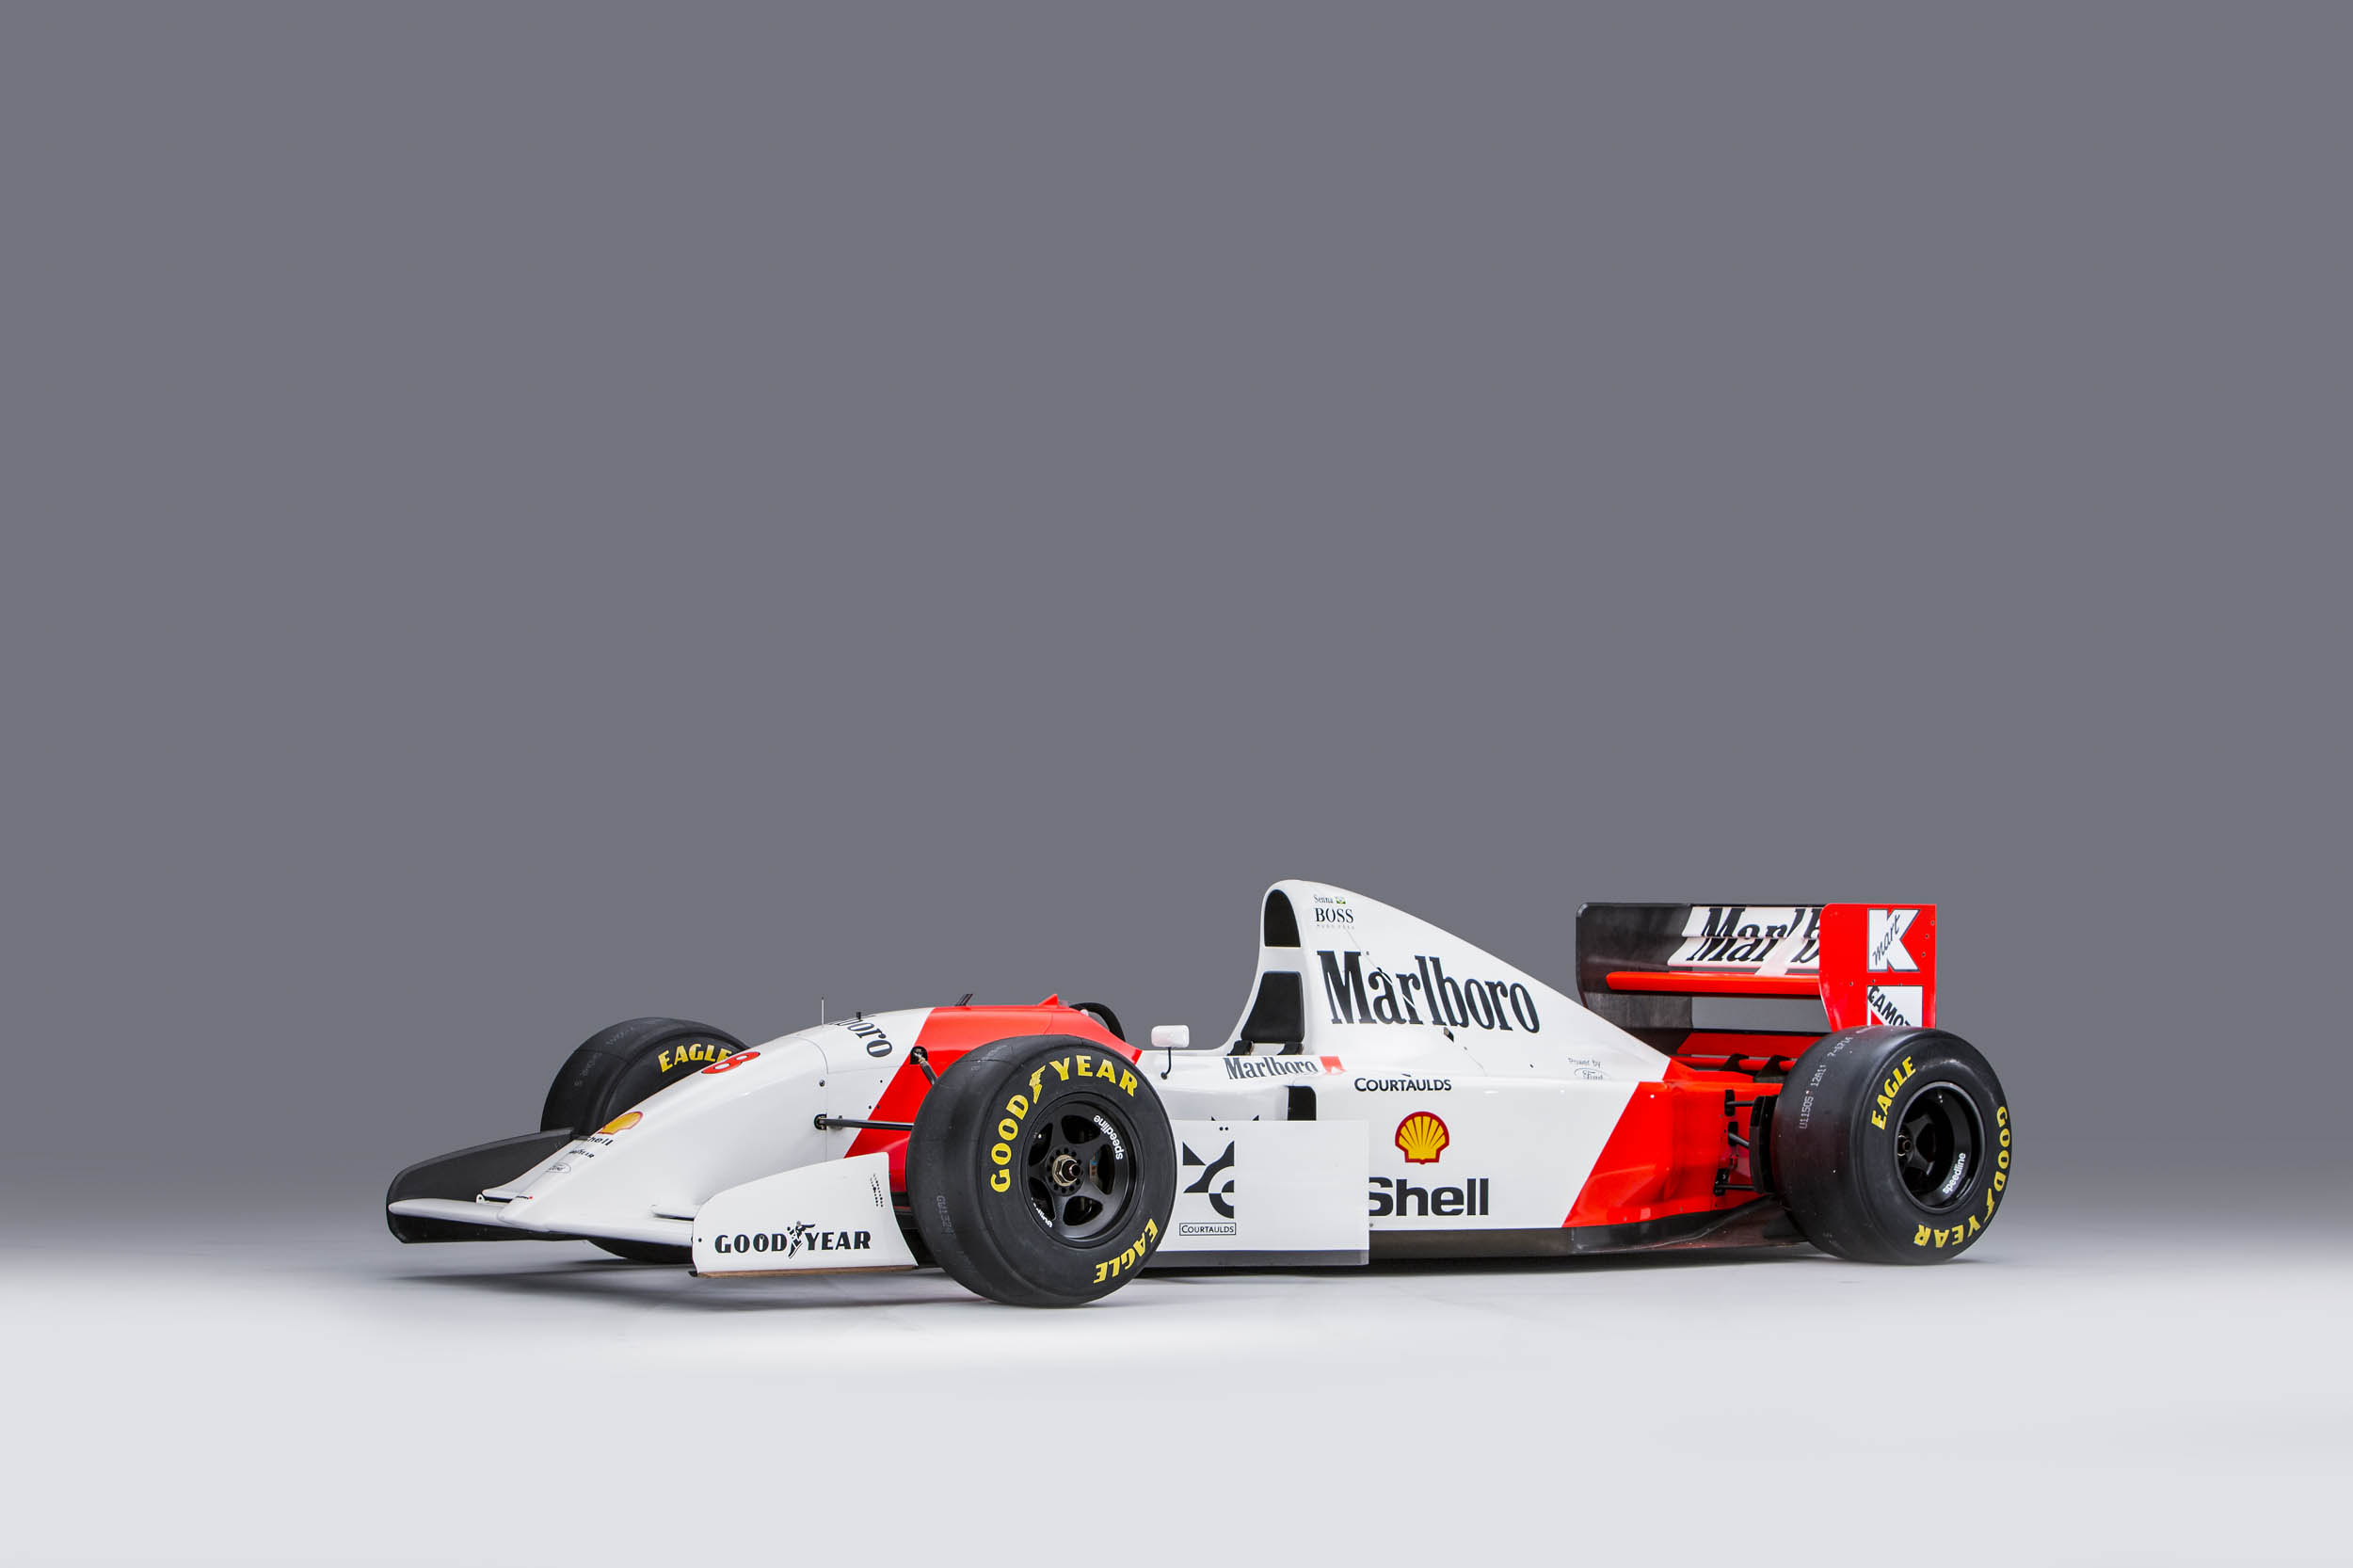 1993 McLaren MP4/8A Chassis no. 6 front 3/4